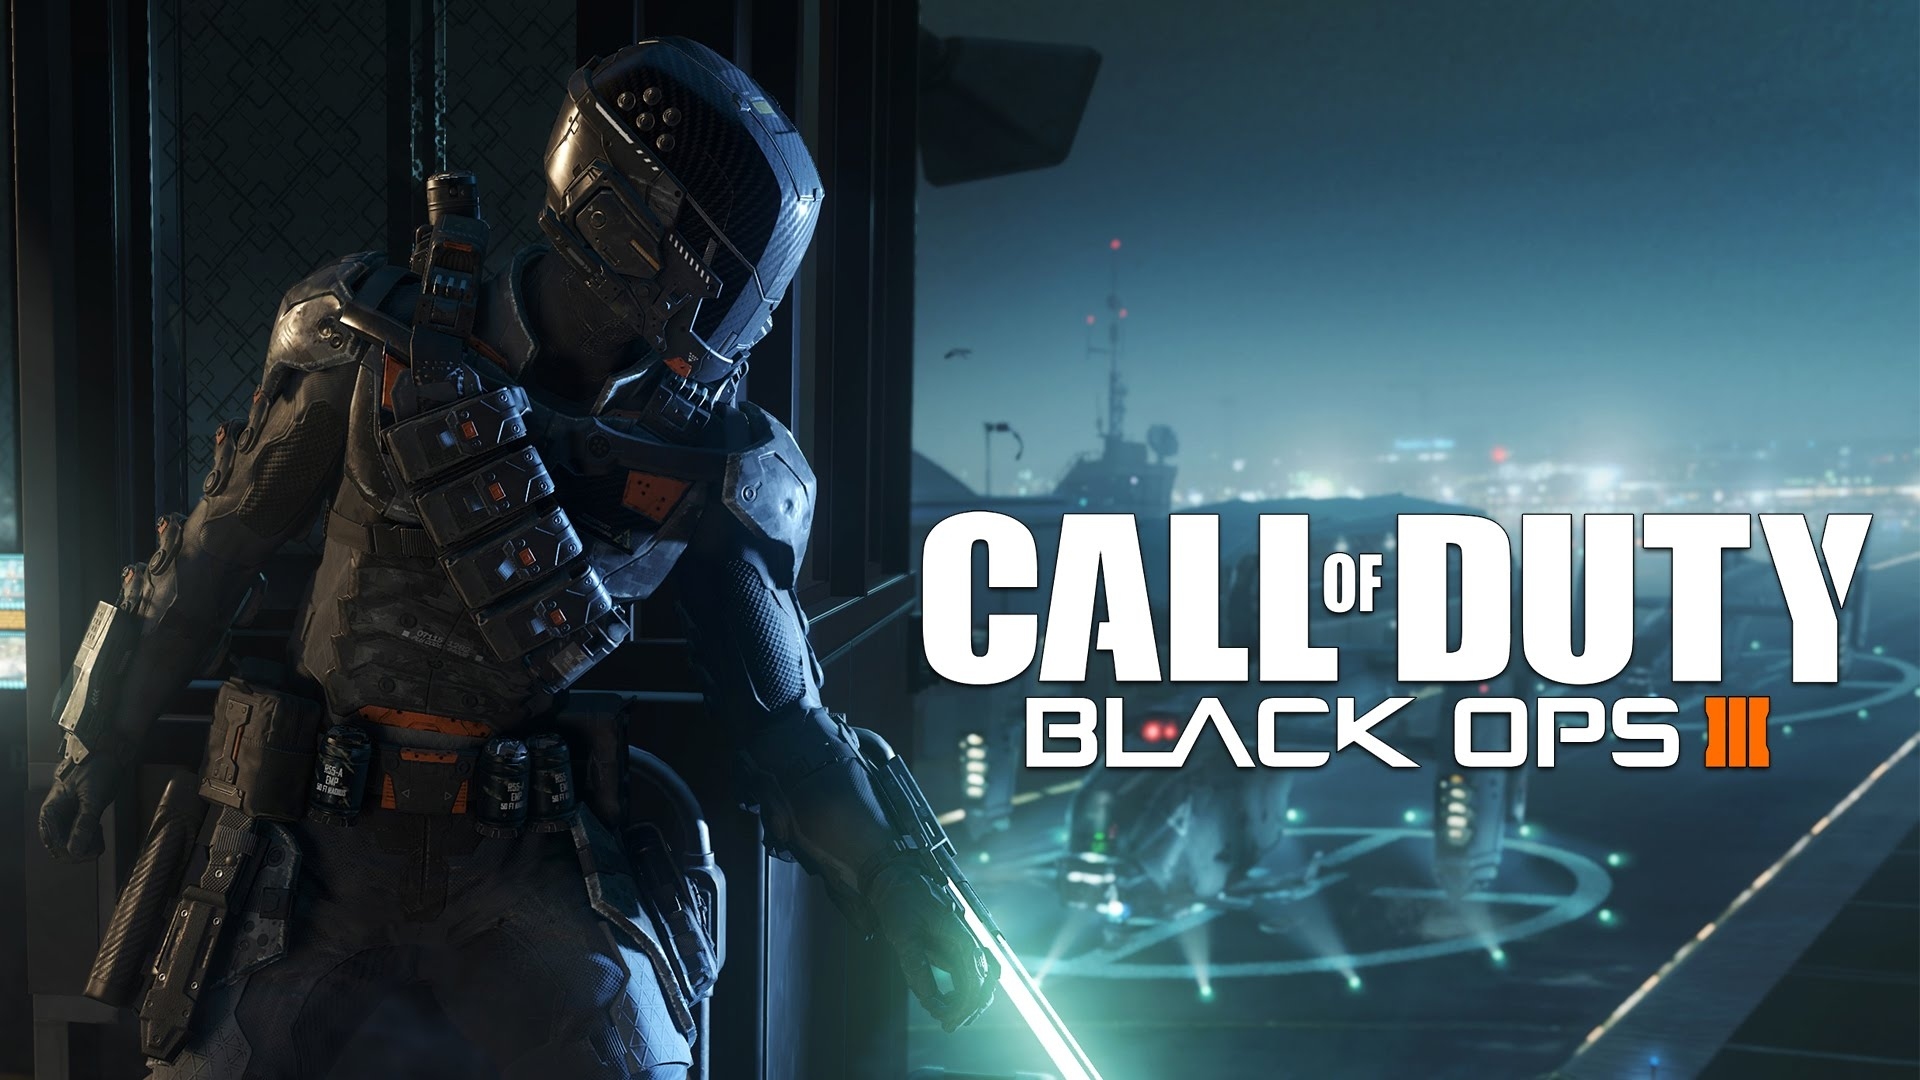 Call Of Duty Bo3 Wallpapers: Black Ops 3 Wallpaper IPhone